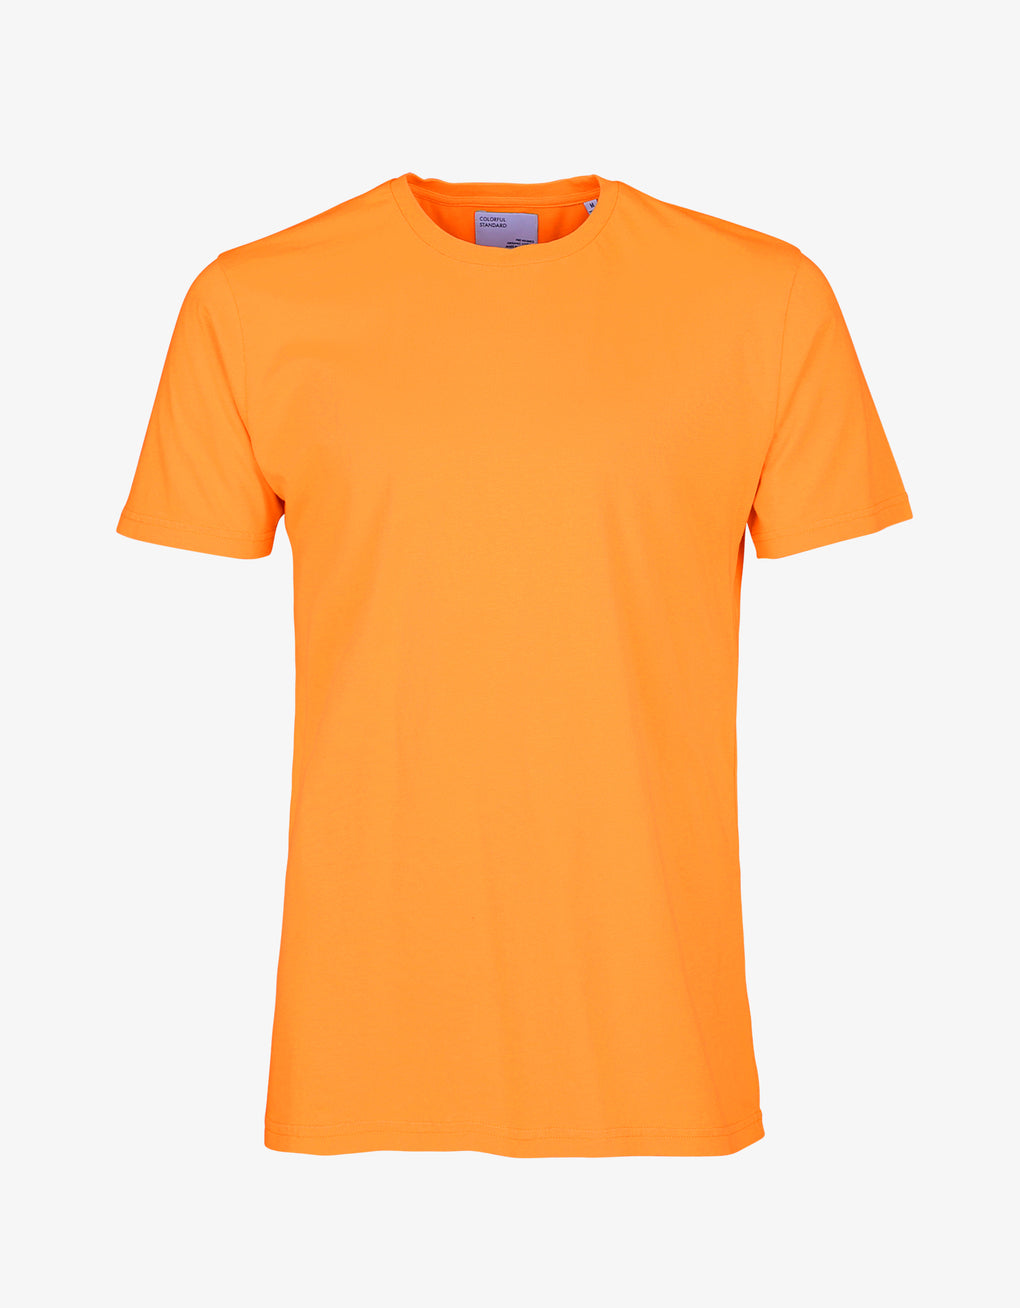 Colorful Standard Classic Organic Tee T-shirt Sunny Orange